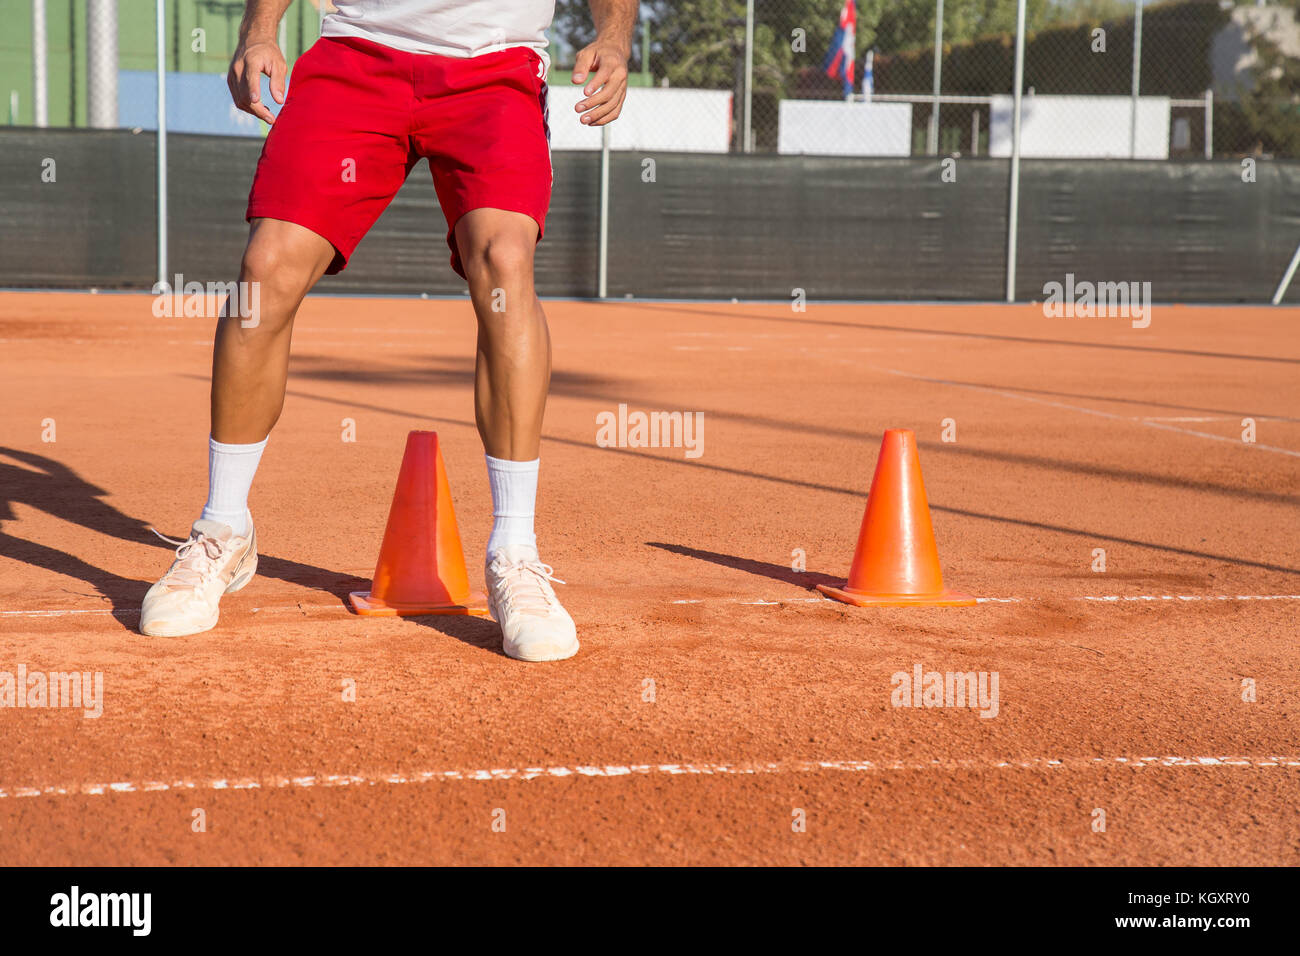 Professional tennis player warming up by dodging cones in zigzag manner. - Stock Image